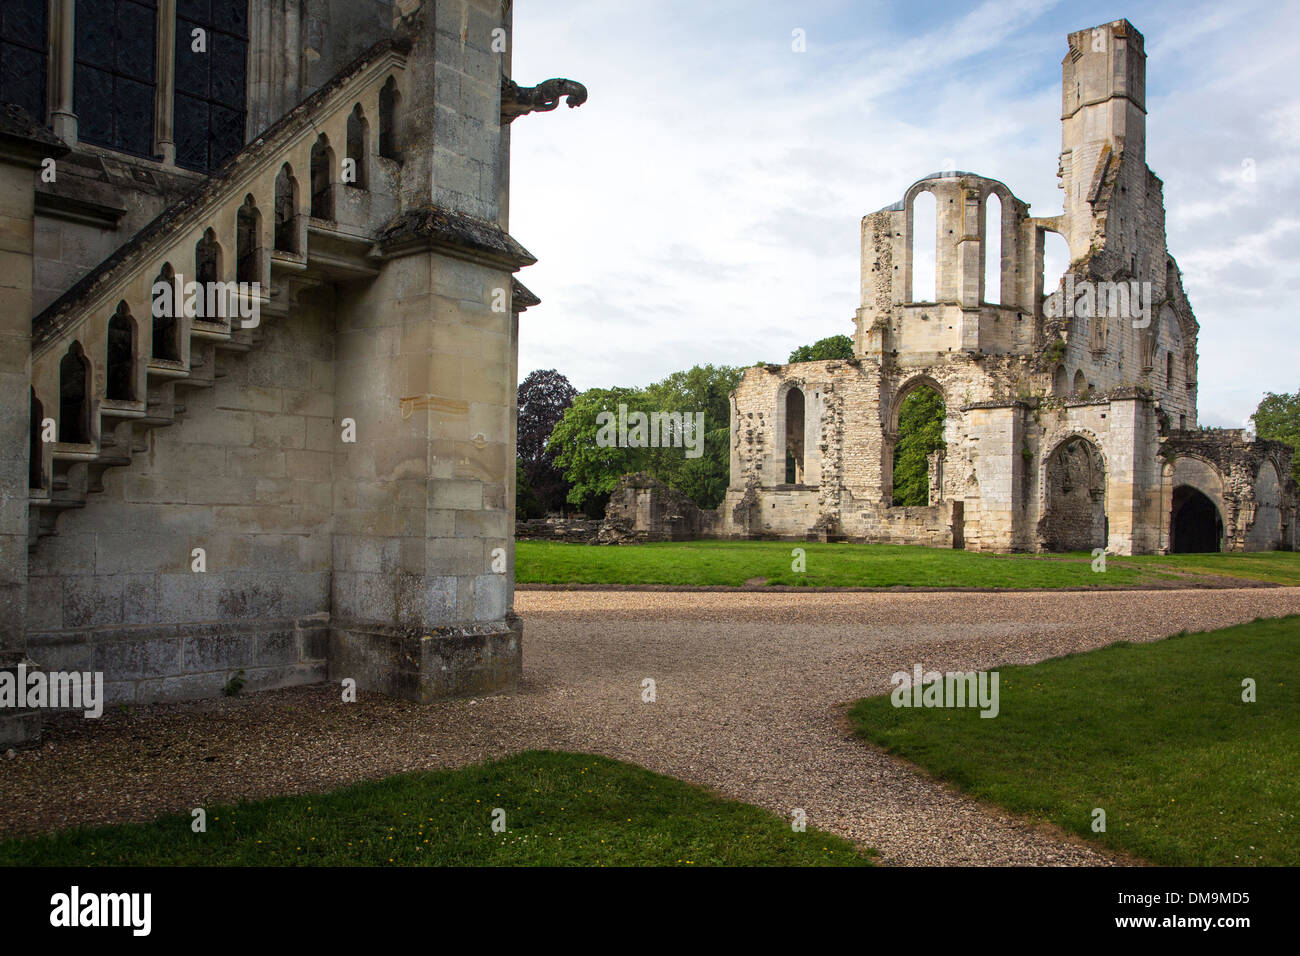 SAINT MARIE CHAPEL AND RUINS OF THE 13TH CENTURY ABBEY CHURCH, ESTATE OF THE FORMER ROYAL ABBEY OF CHAALIS, FONTAINE-CHAALIS, OISE (60), FRANCE - Stock Image